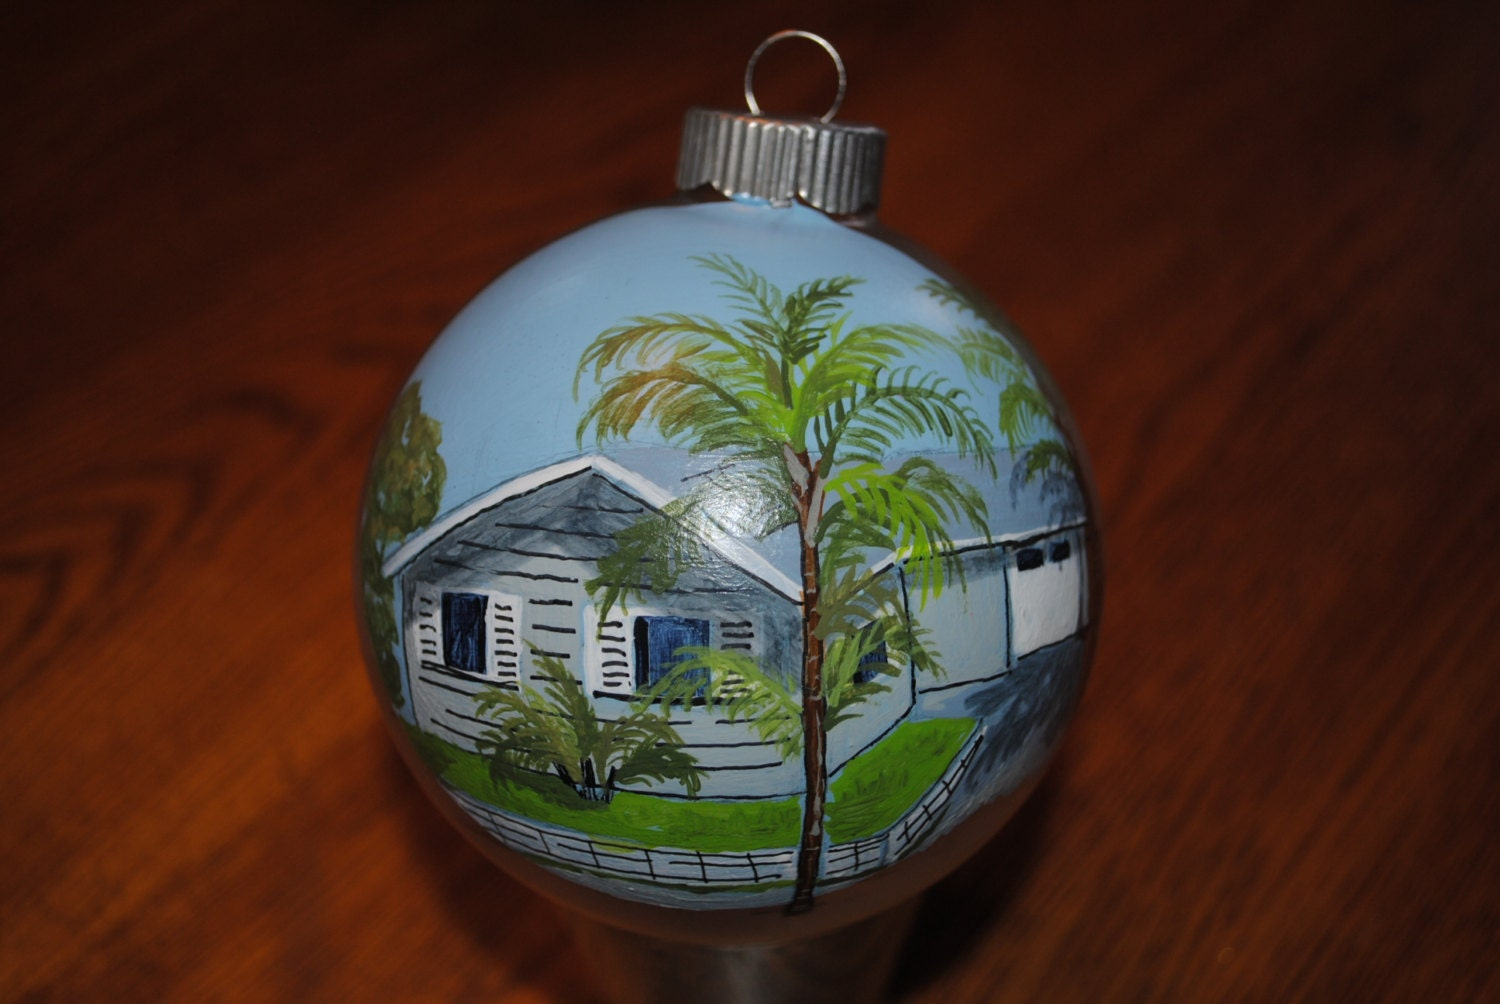 Custom Hand Painted Christmas Ornament Sold This Is Just For Display